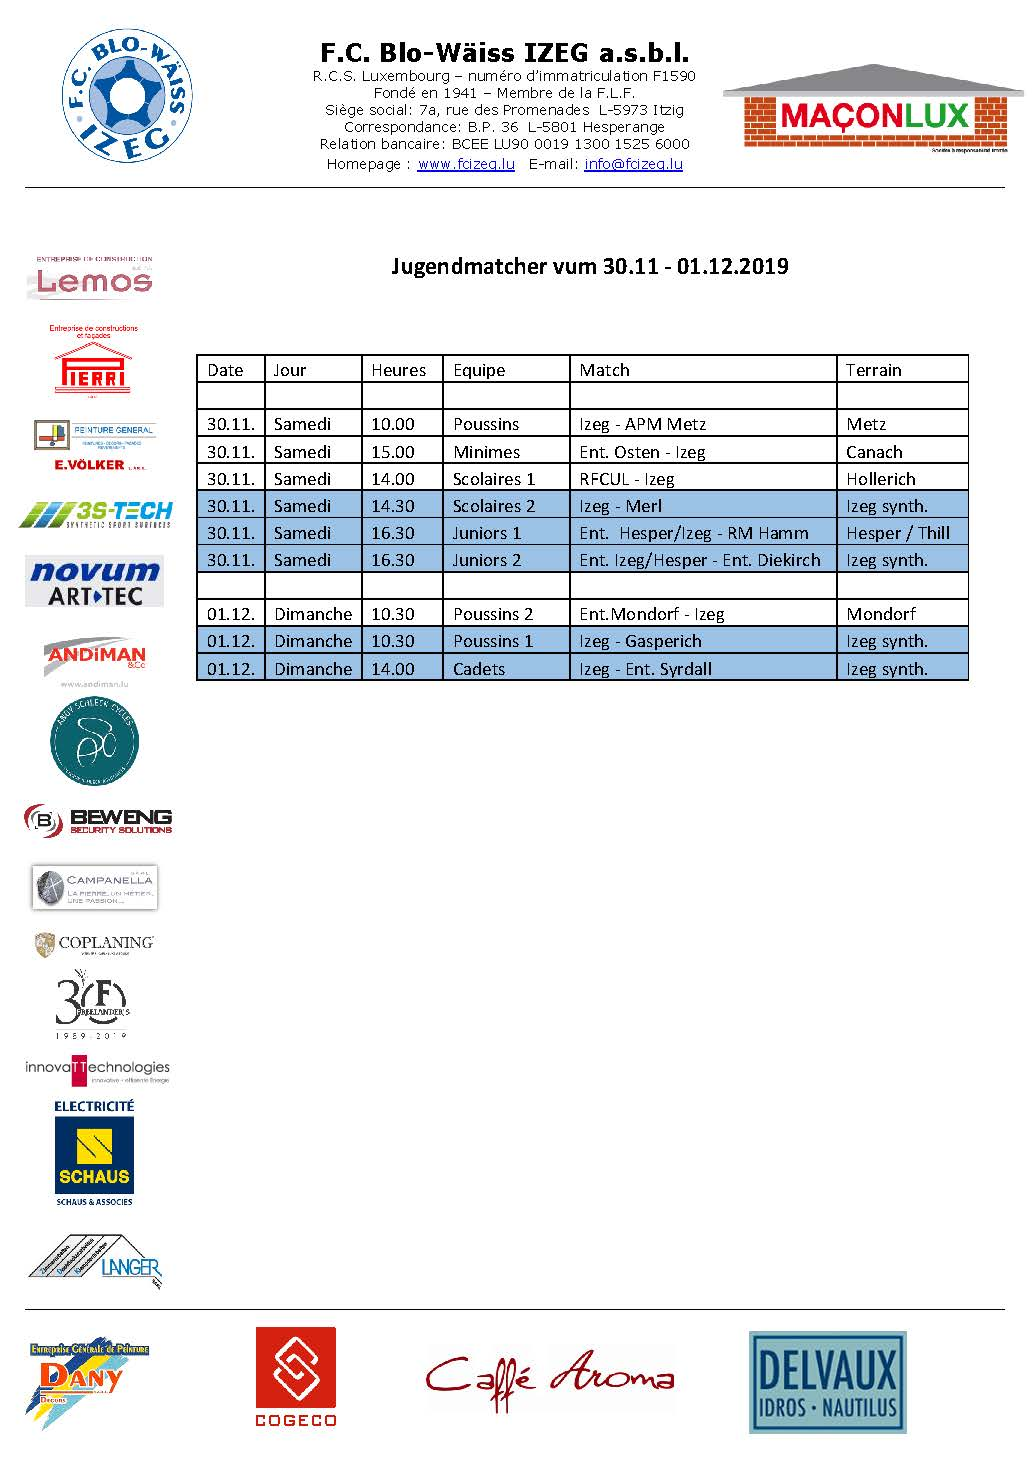 Jugendmatcher vum Weekend 30. November bis 01. Dezember